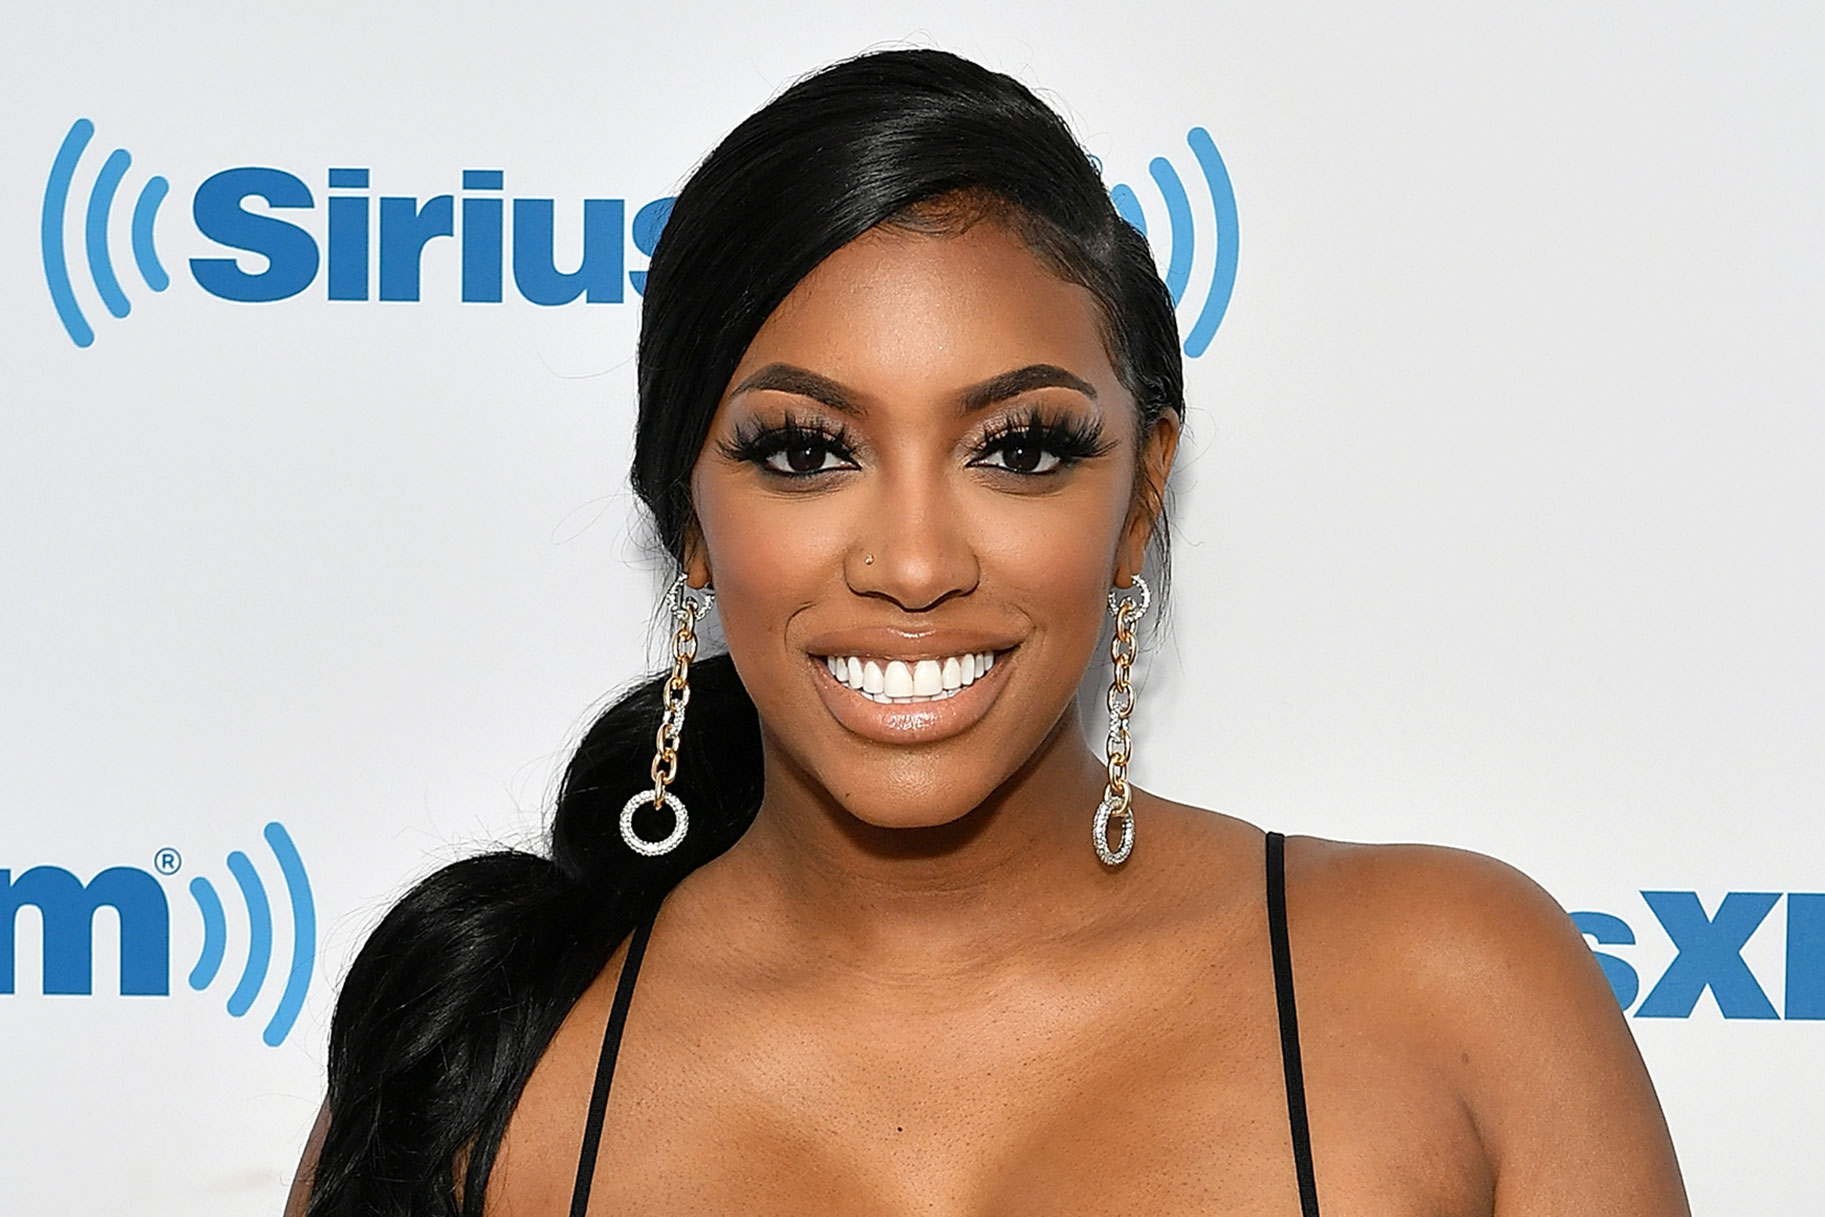 Porsha Williams Tried the Popeyes Chicken Sandwich and Gave Her Honest Review